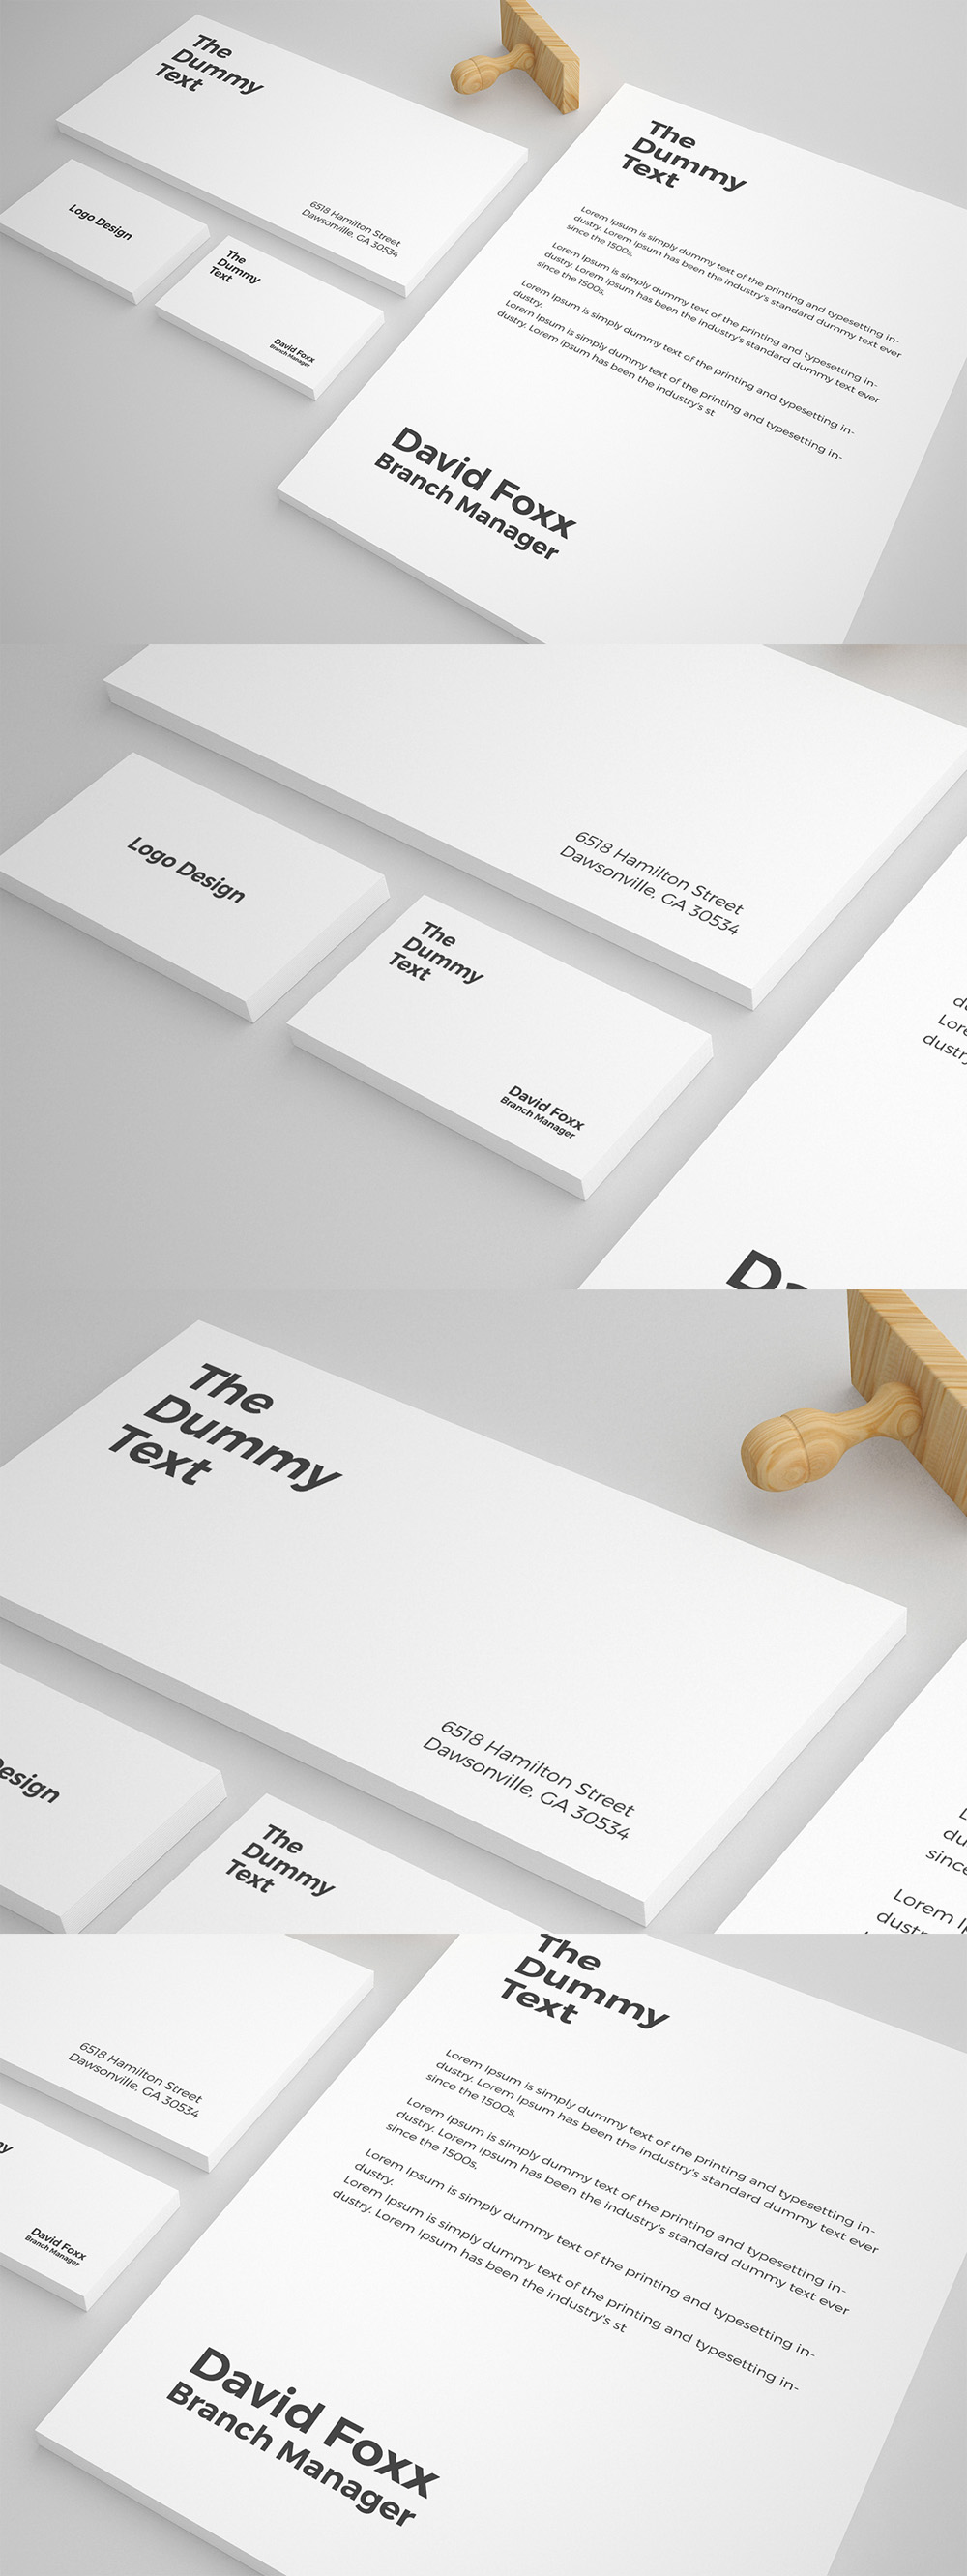 free stationary mockup psd template